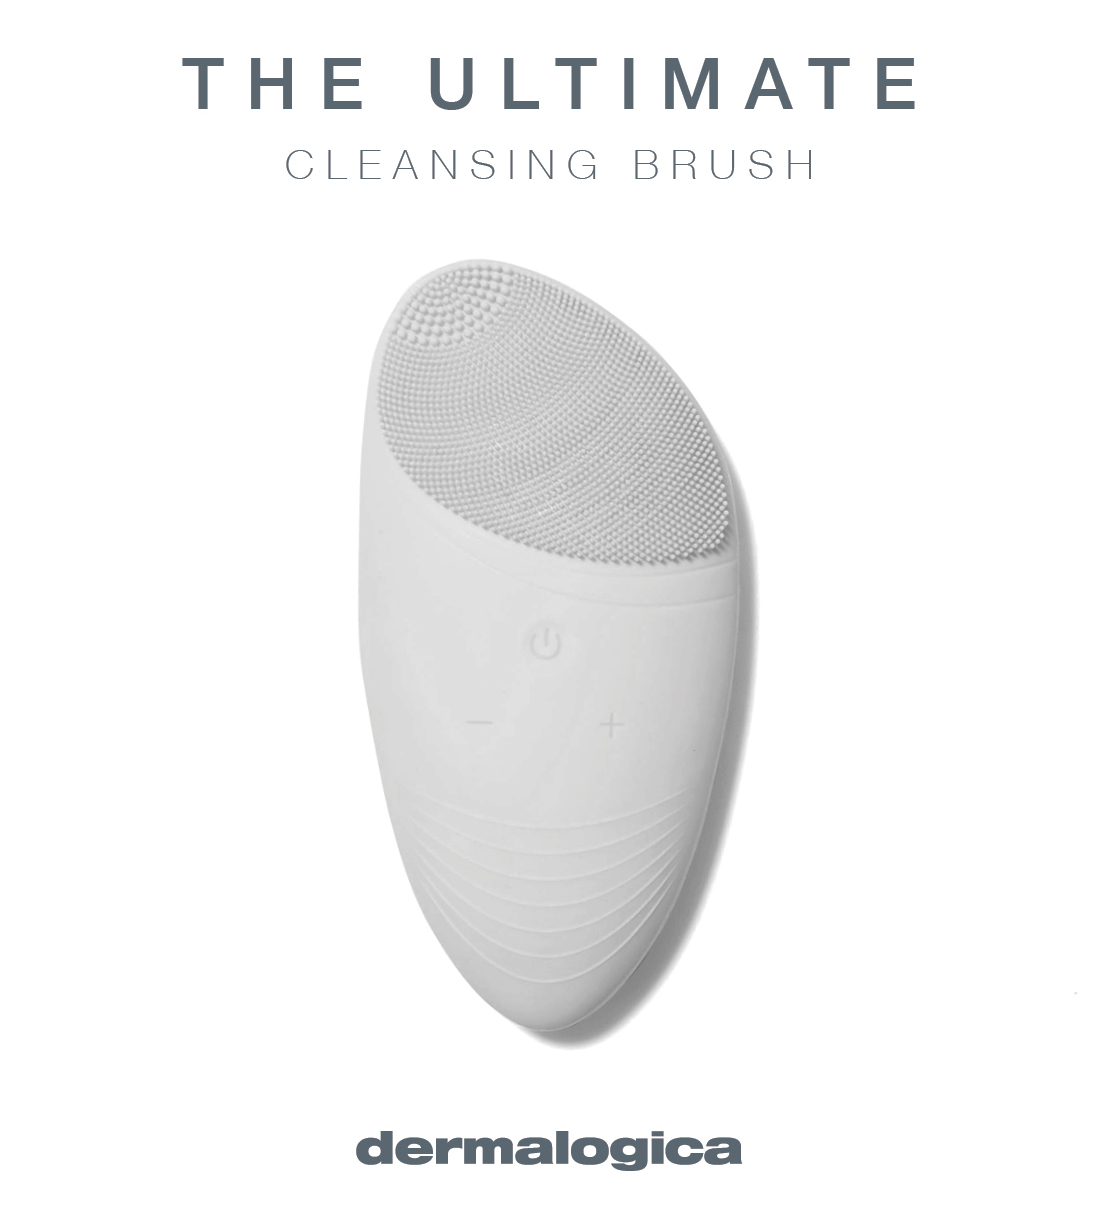 the ultimate cleansing brush